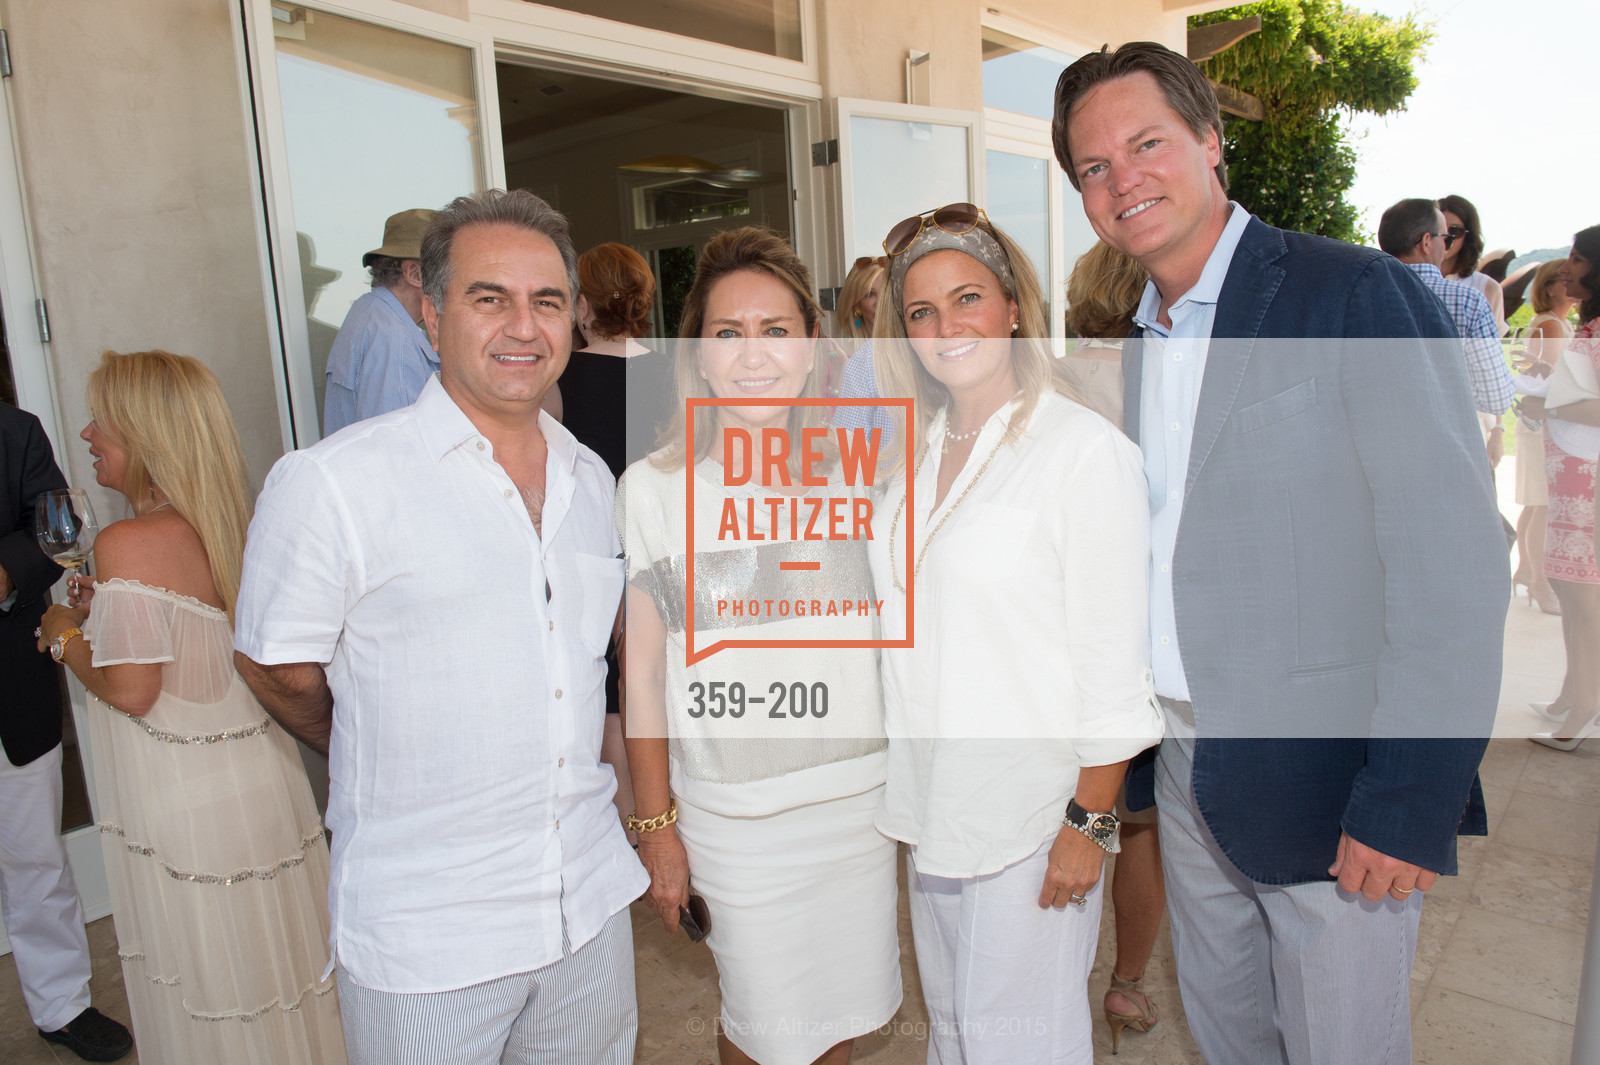 Mazi Ghorbani, Shahpar Khaledi, Gaby Ghorbani, Stephen Oetgen, Festival del Sole Brunello Cucinelli Luncheon Hosted by Hall Wines and Neiman Marcus, P\. 56 Auberge Rd, July 19th, 2015,Drew Altizer, Drew Altizer Photography, full-service agency, private events, San Francisco photographer, photographer california